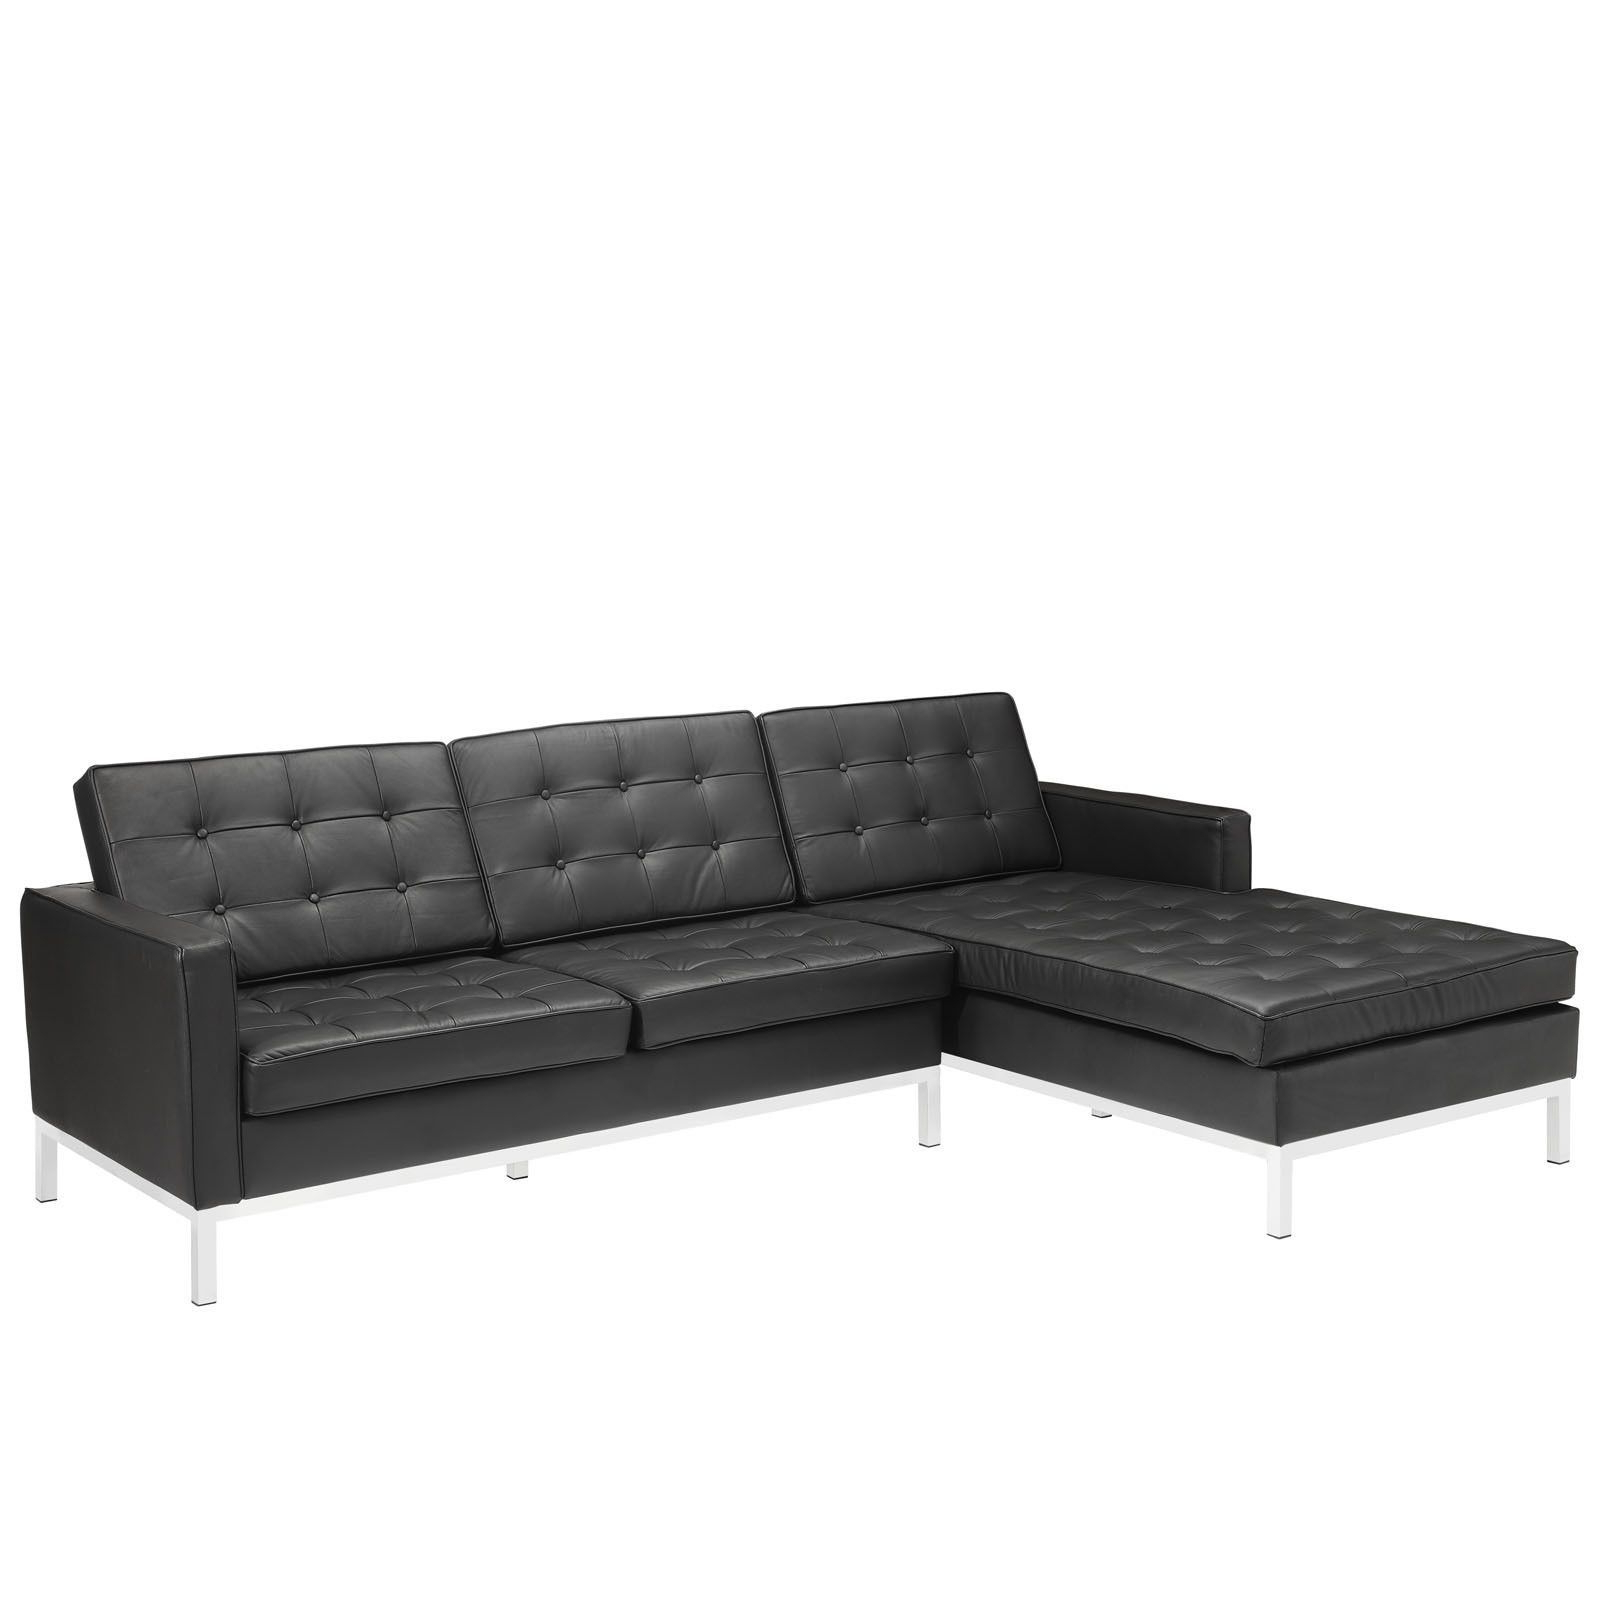 Florence Knoll Style Sectional Sofa In Black Leather Left Throughout 2018 Florence Mid Century Modern Velvet Left Sectional Sofas (View 2 of 20)